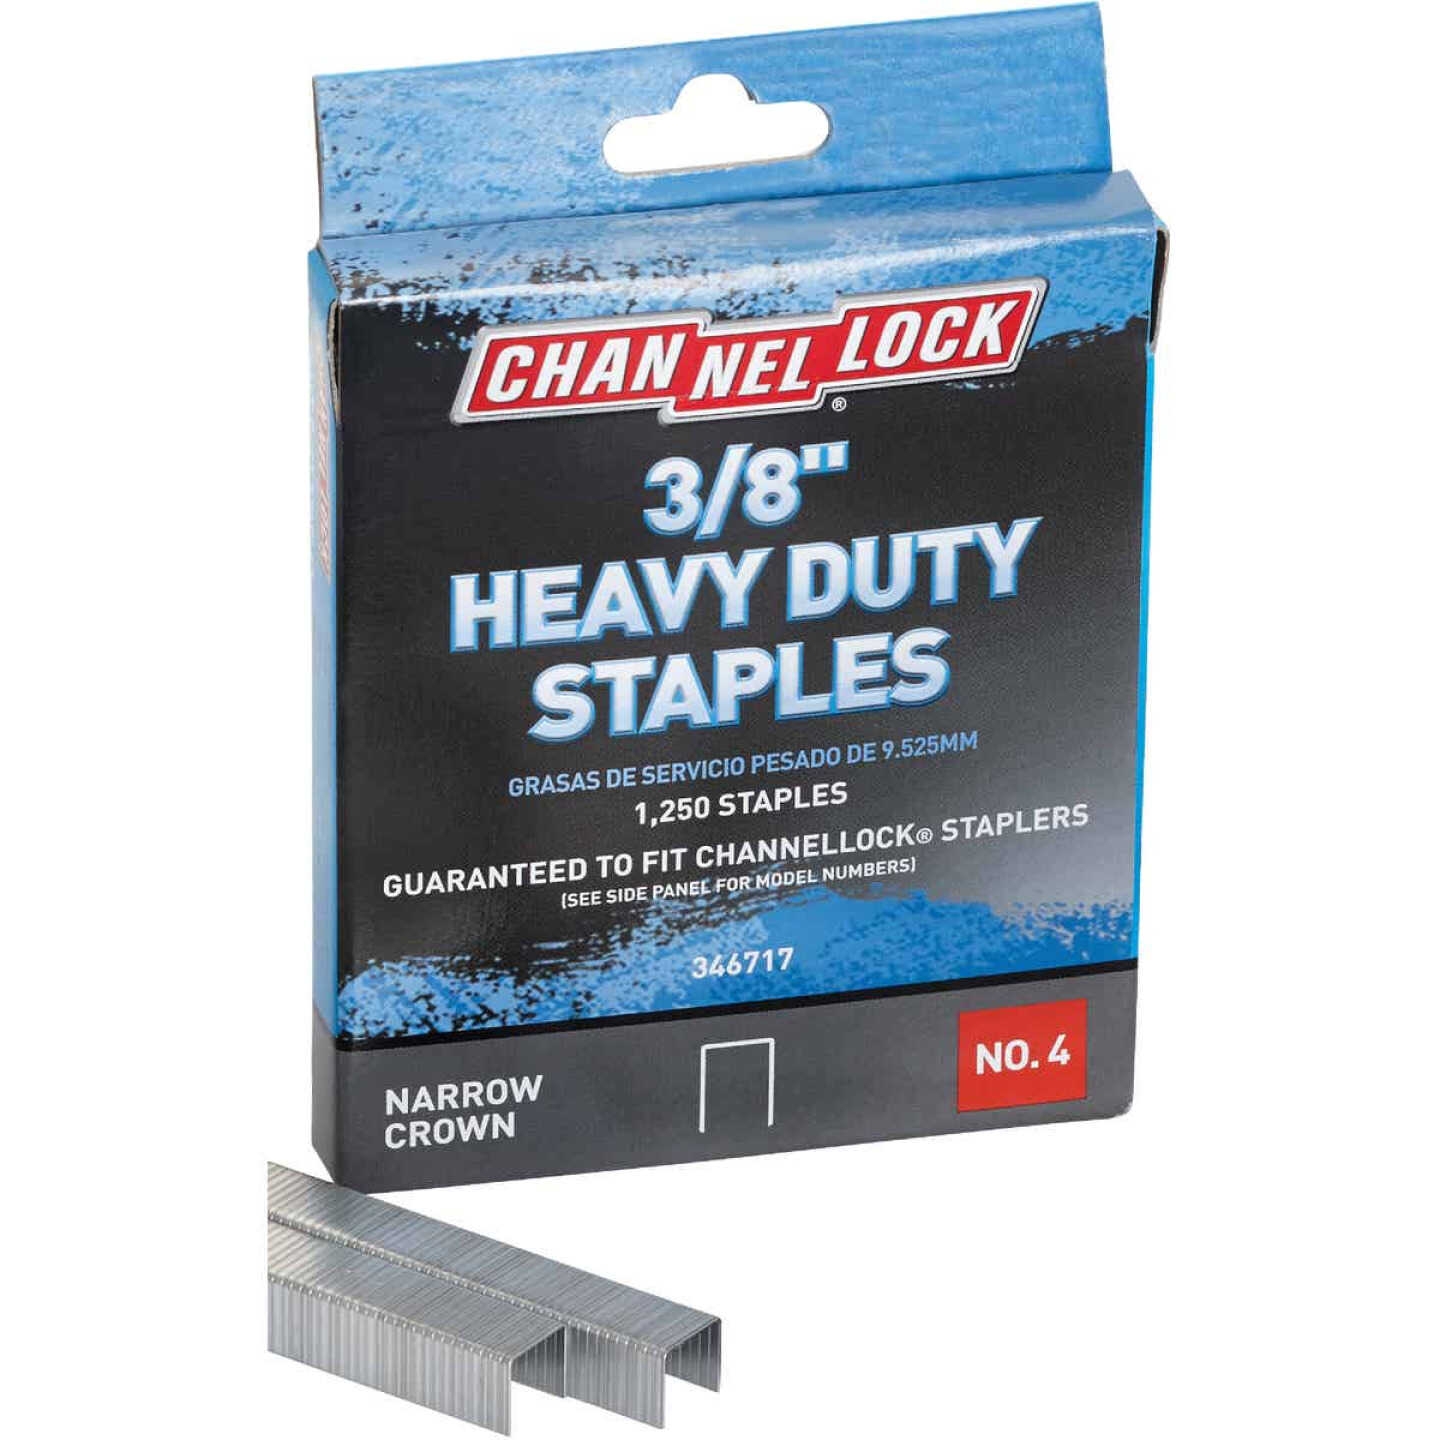 Channellock No. 4 Heavy-Duty Narrow Crown Staple, 3/8 In. (1250-Pack) Image 3